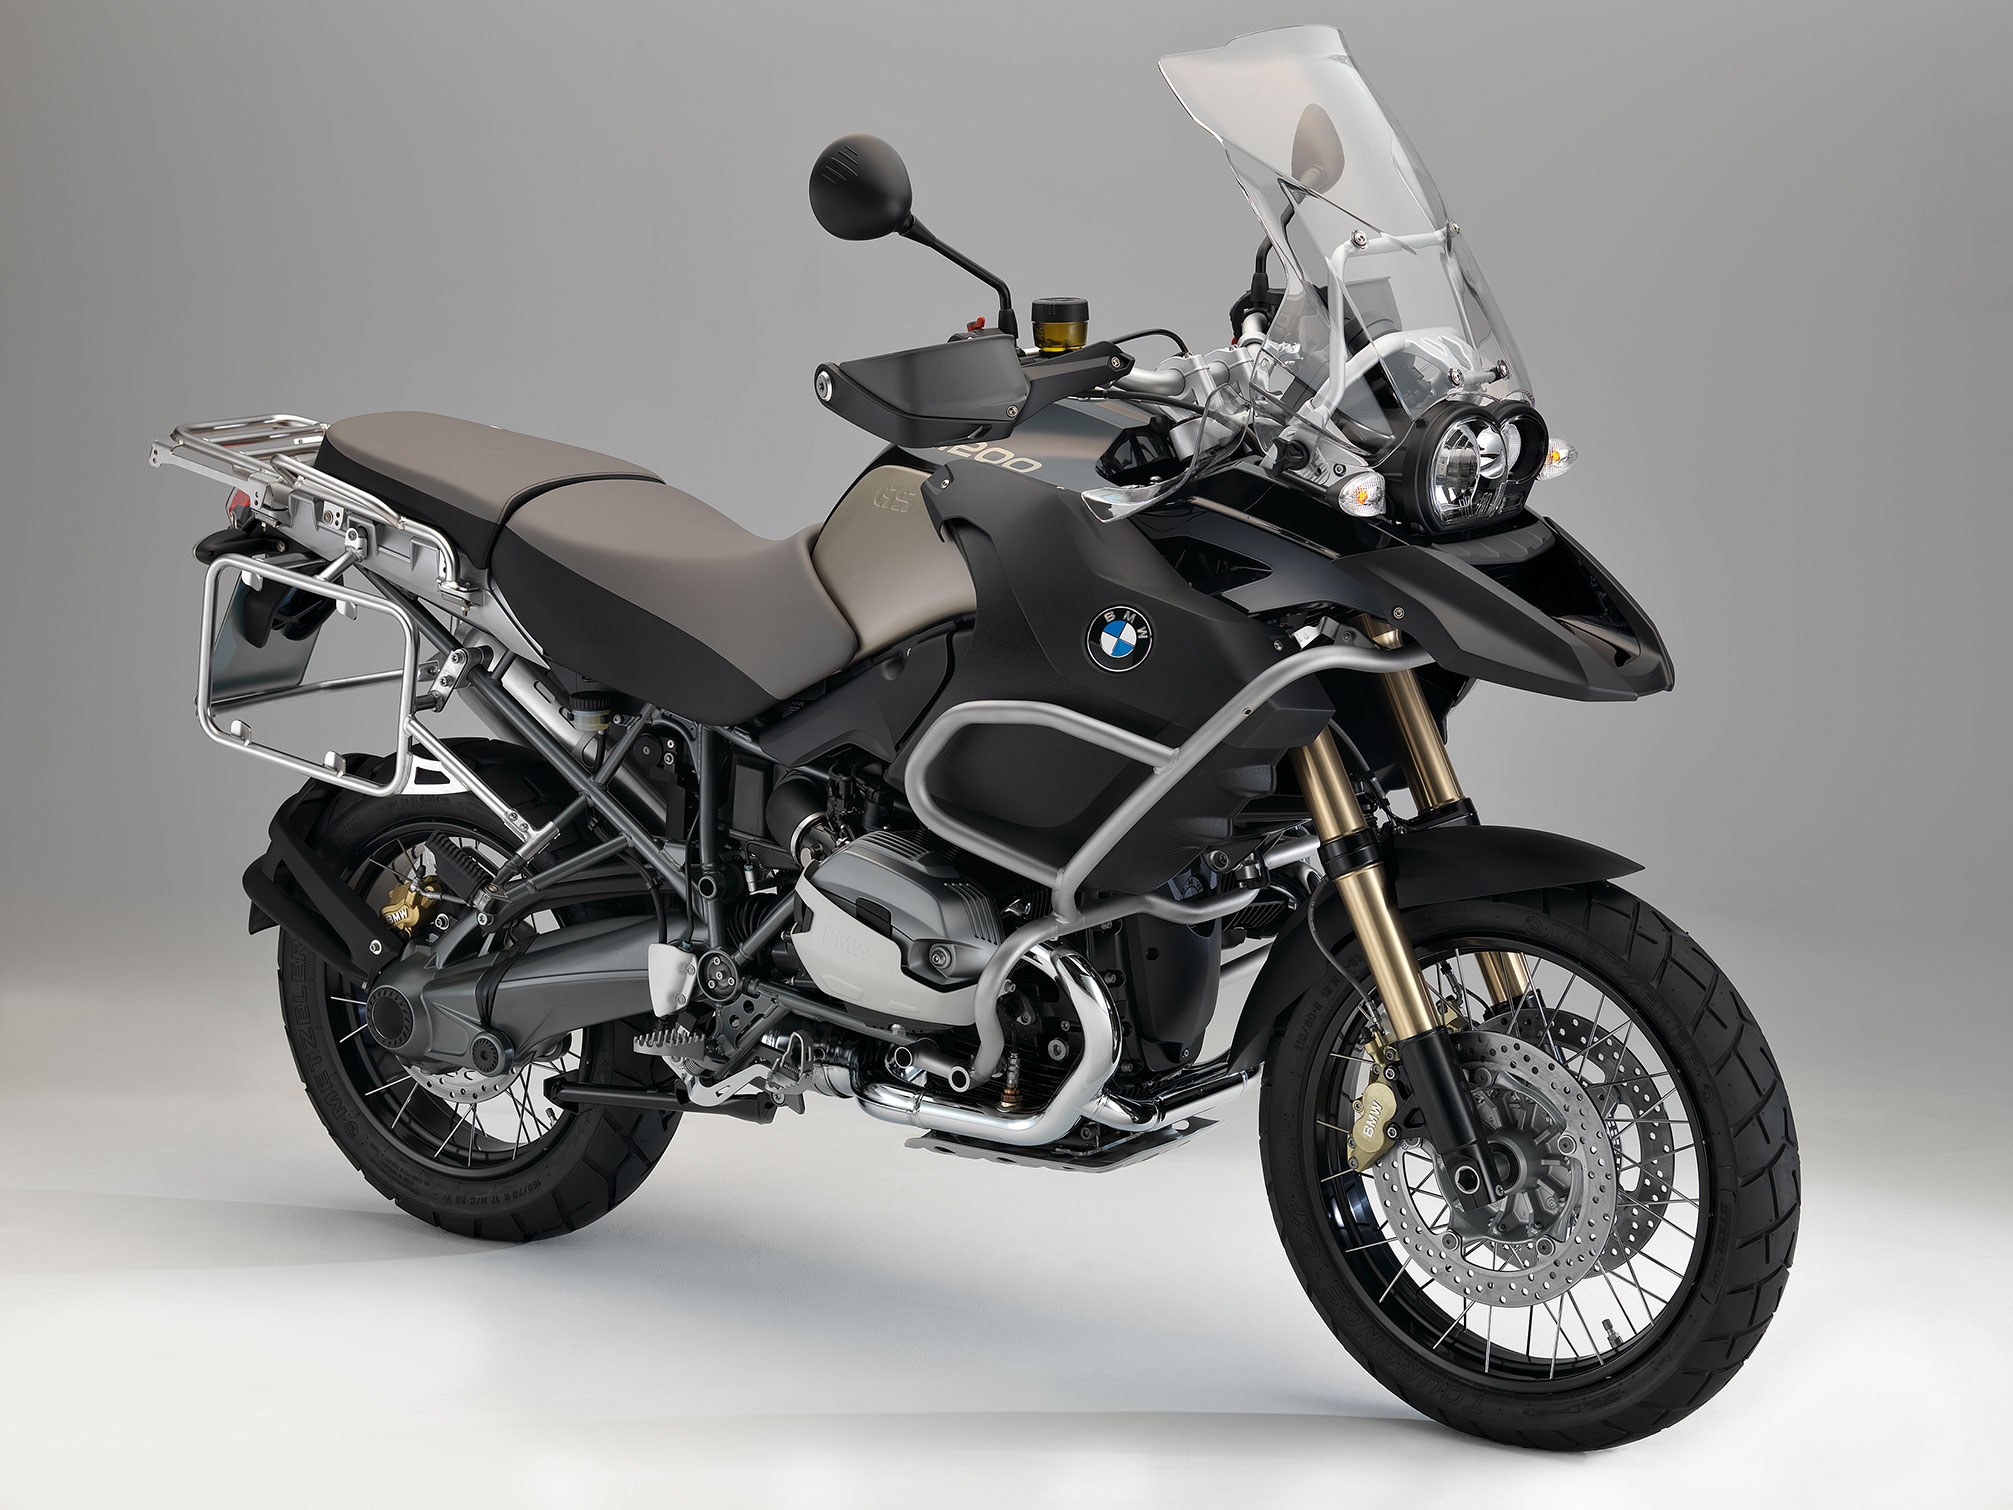 BMW R1200GS Adventure 2015 images #78352